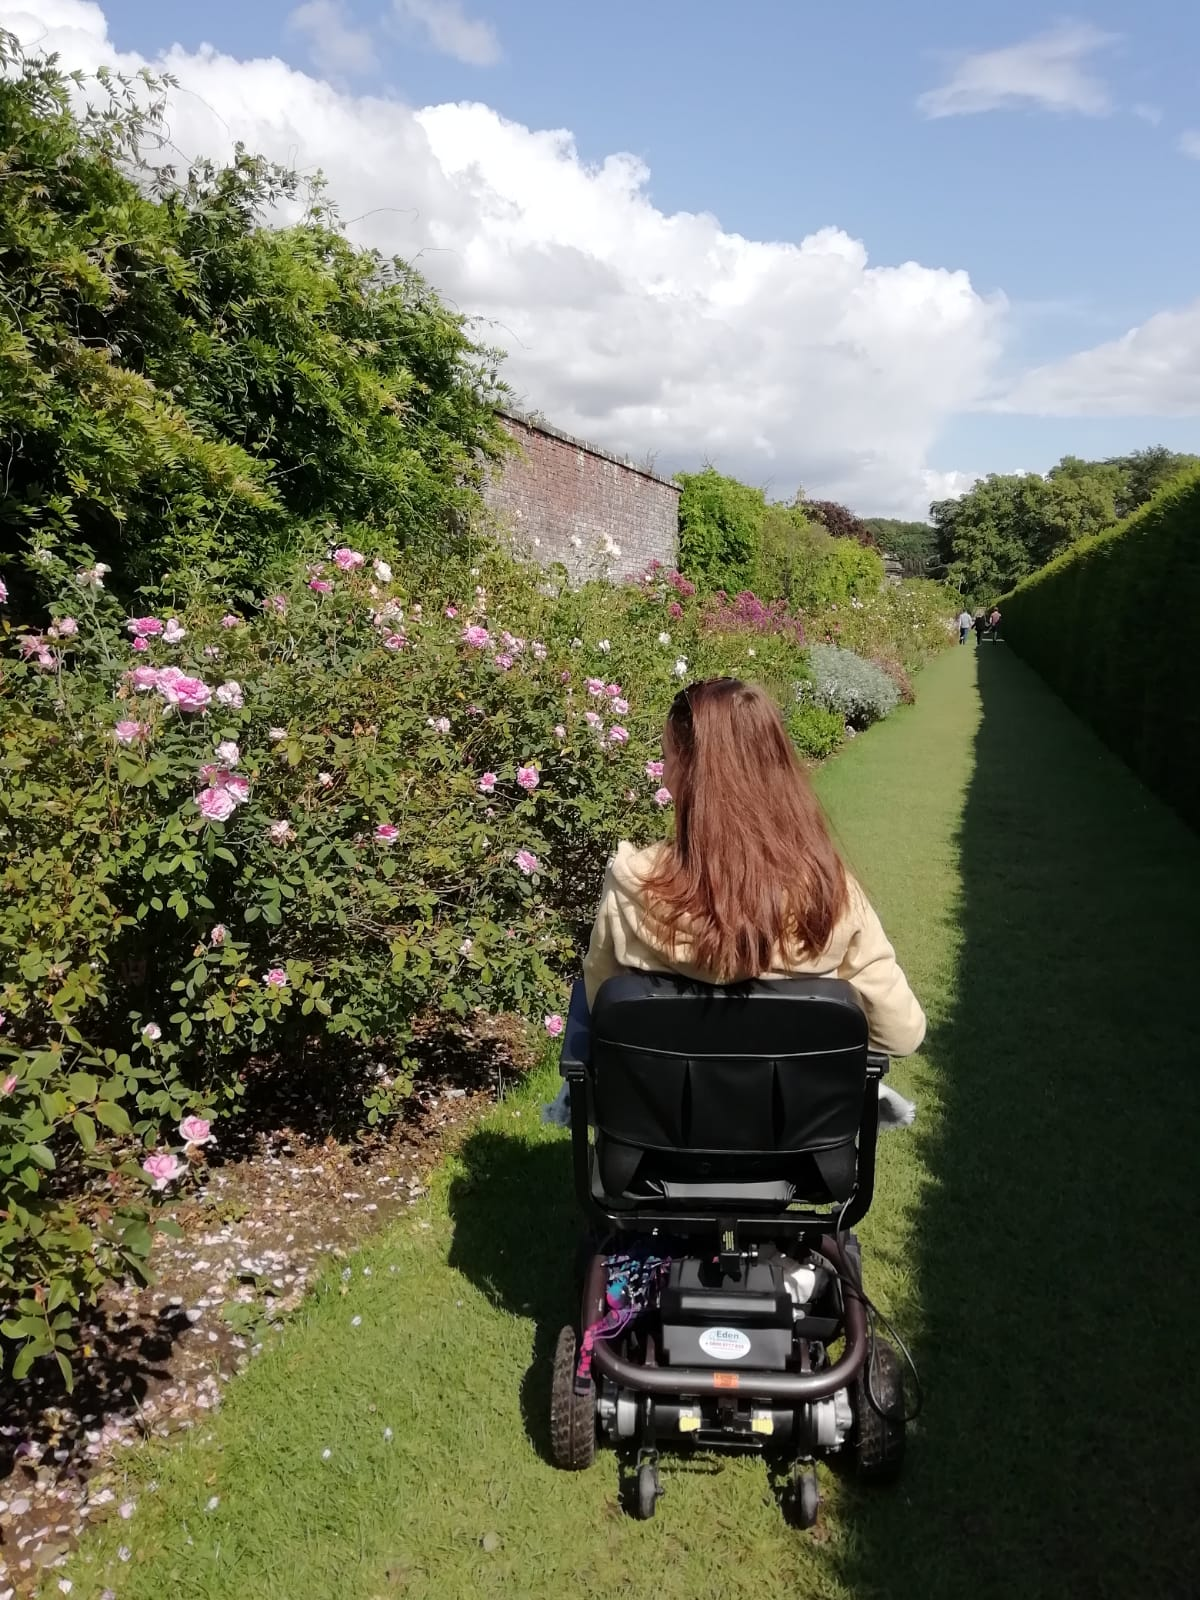 pippa in powerchair with back to camera, driving along and looking at pretty rose displays to the left